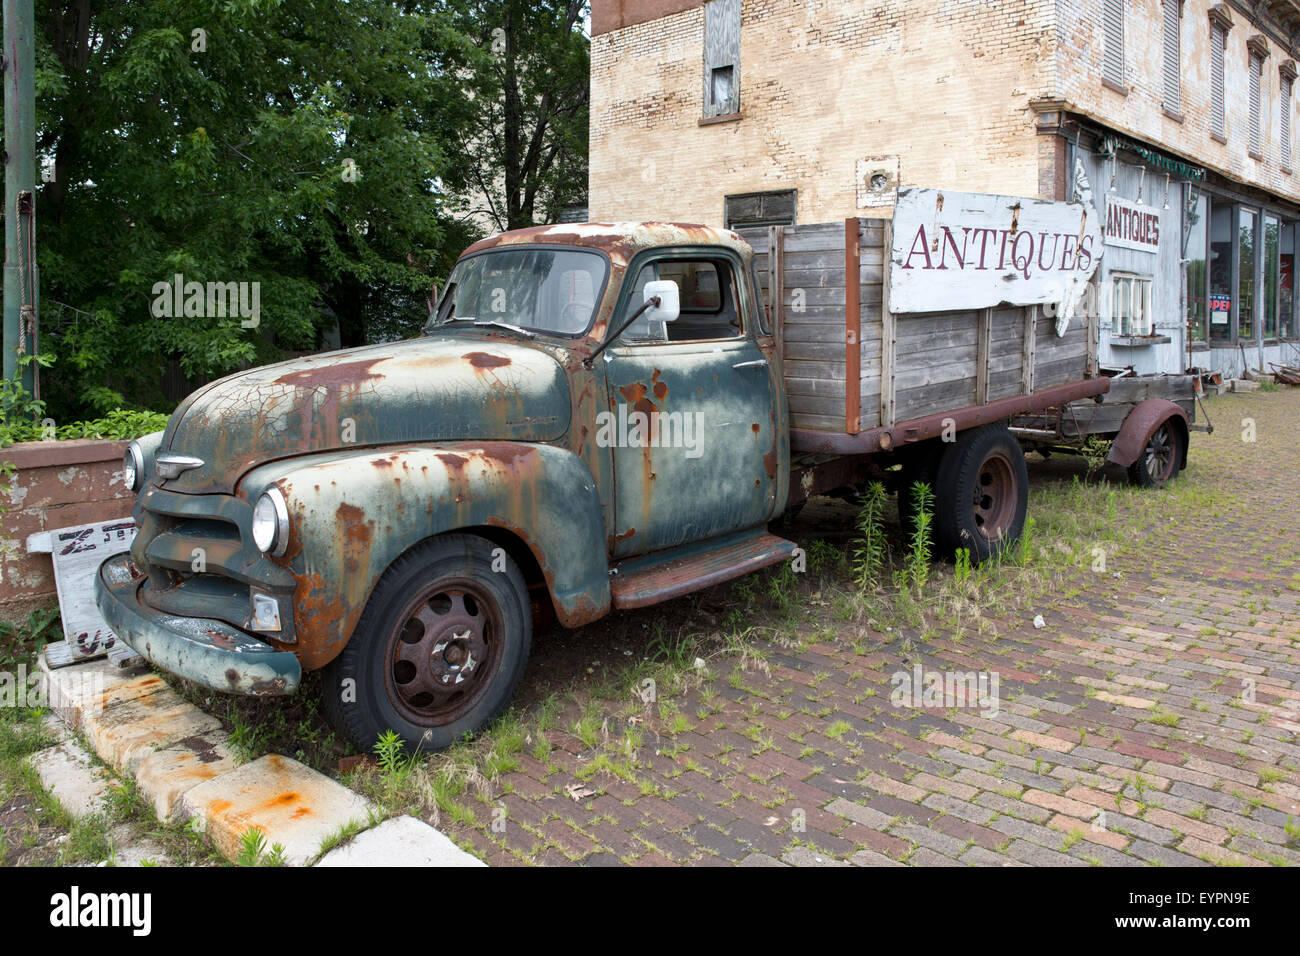 Old Chevy Pickup Stock Photos & Old Chevy Pickup Stock Images - Alamy